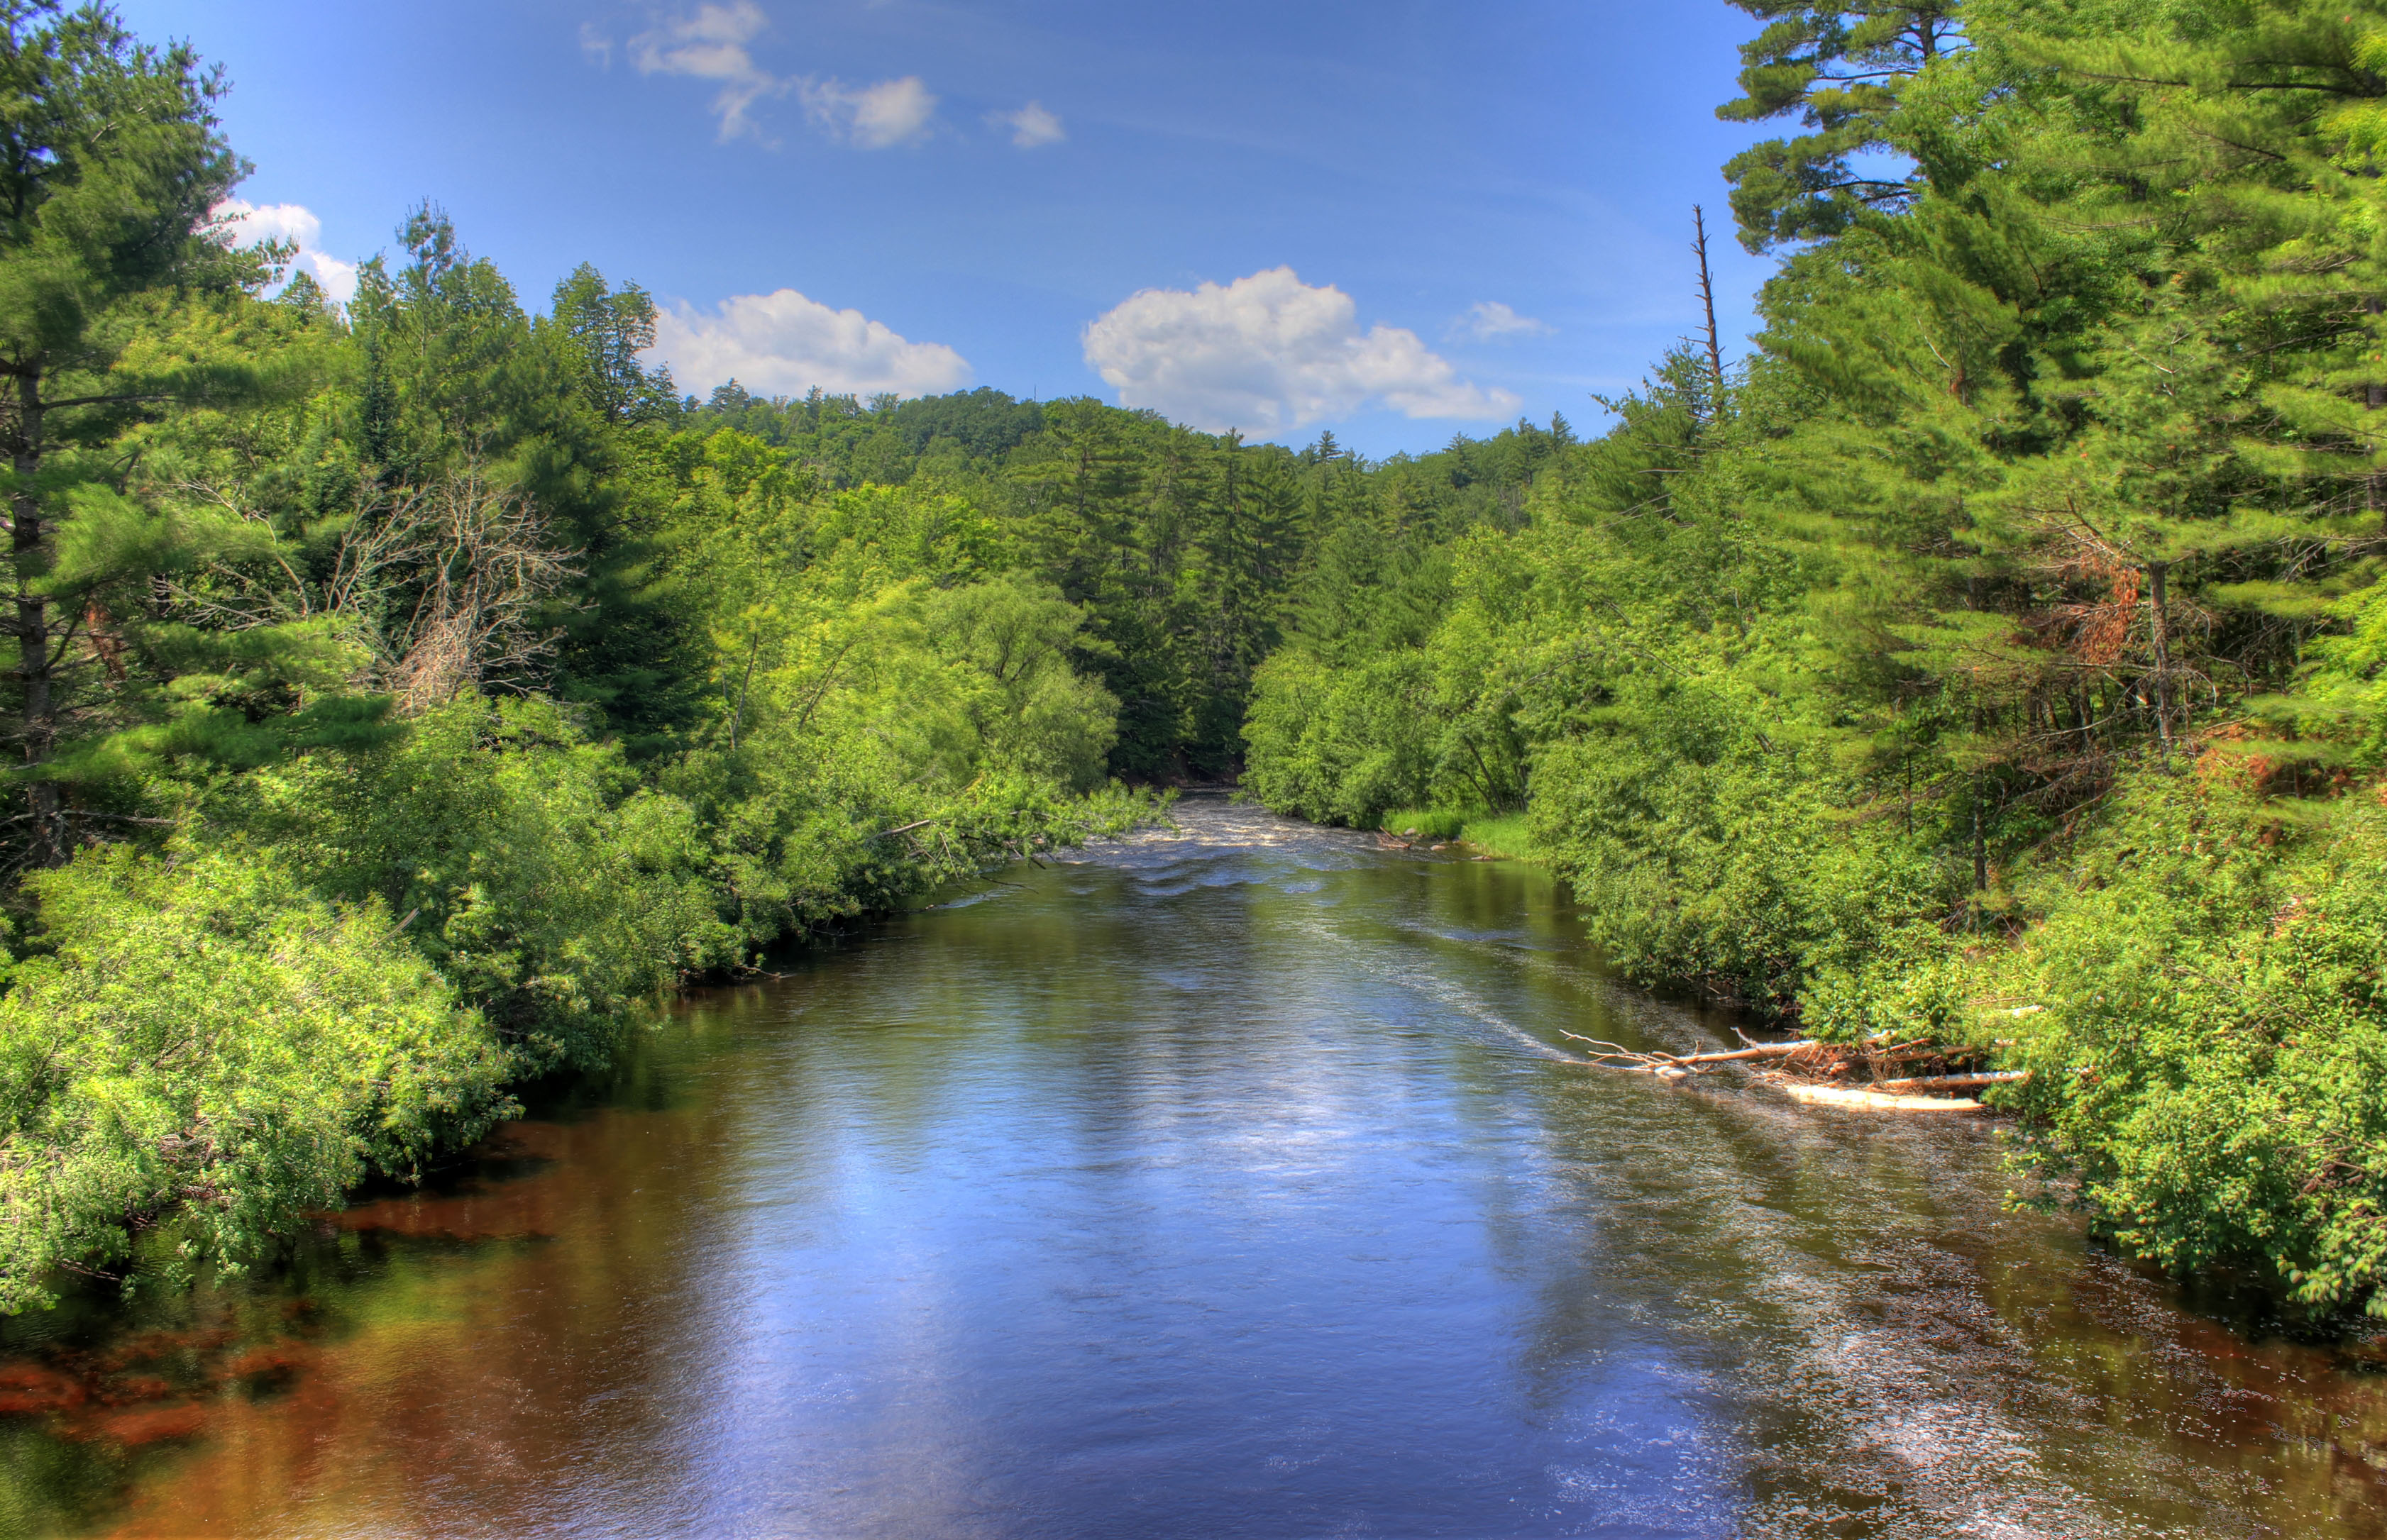 Scenic landscape of the Bad River at Copper Falls State Park.